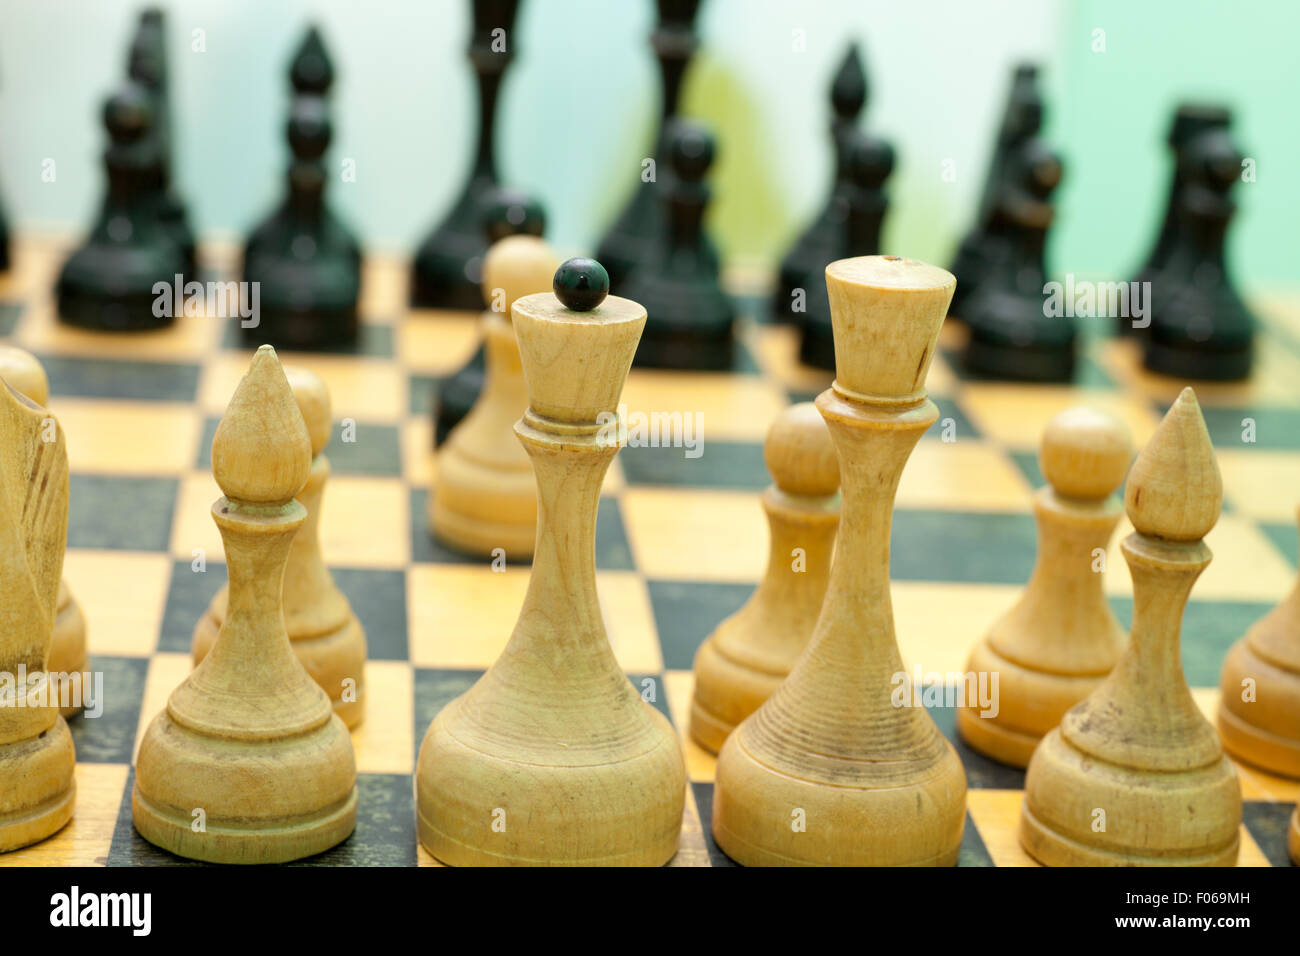 Old styled chess board with figures - Stock Image